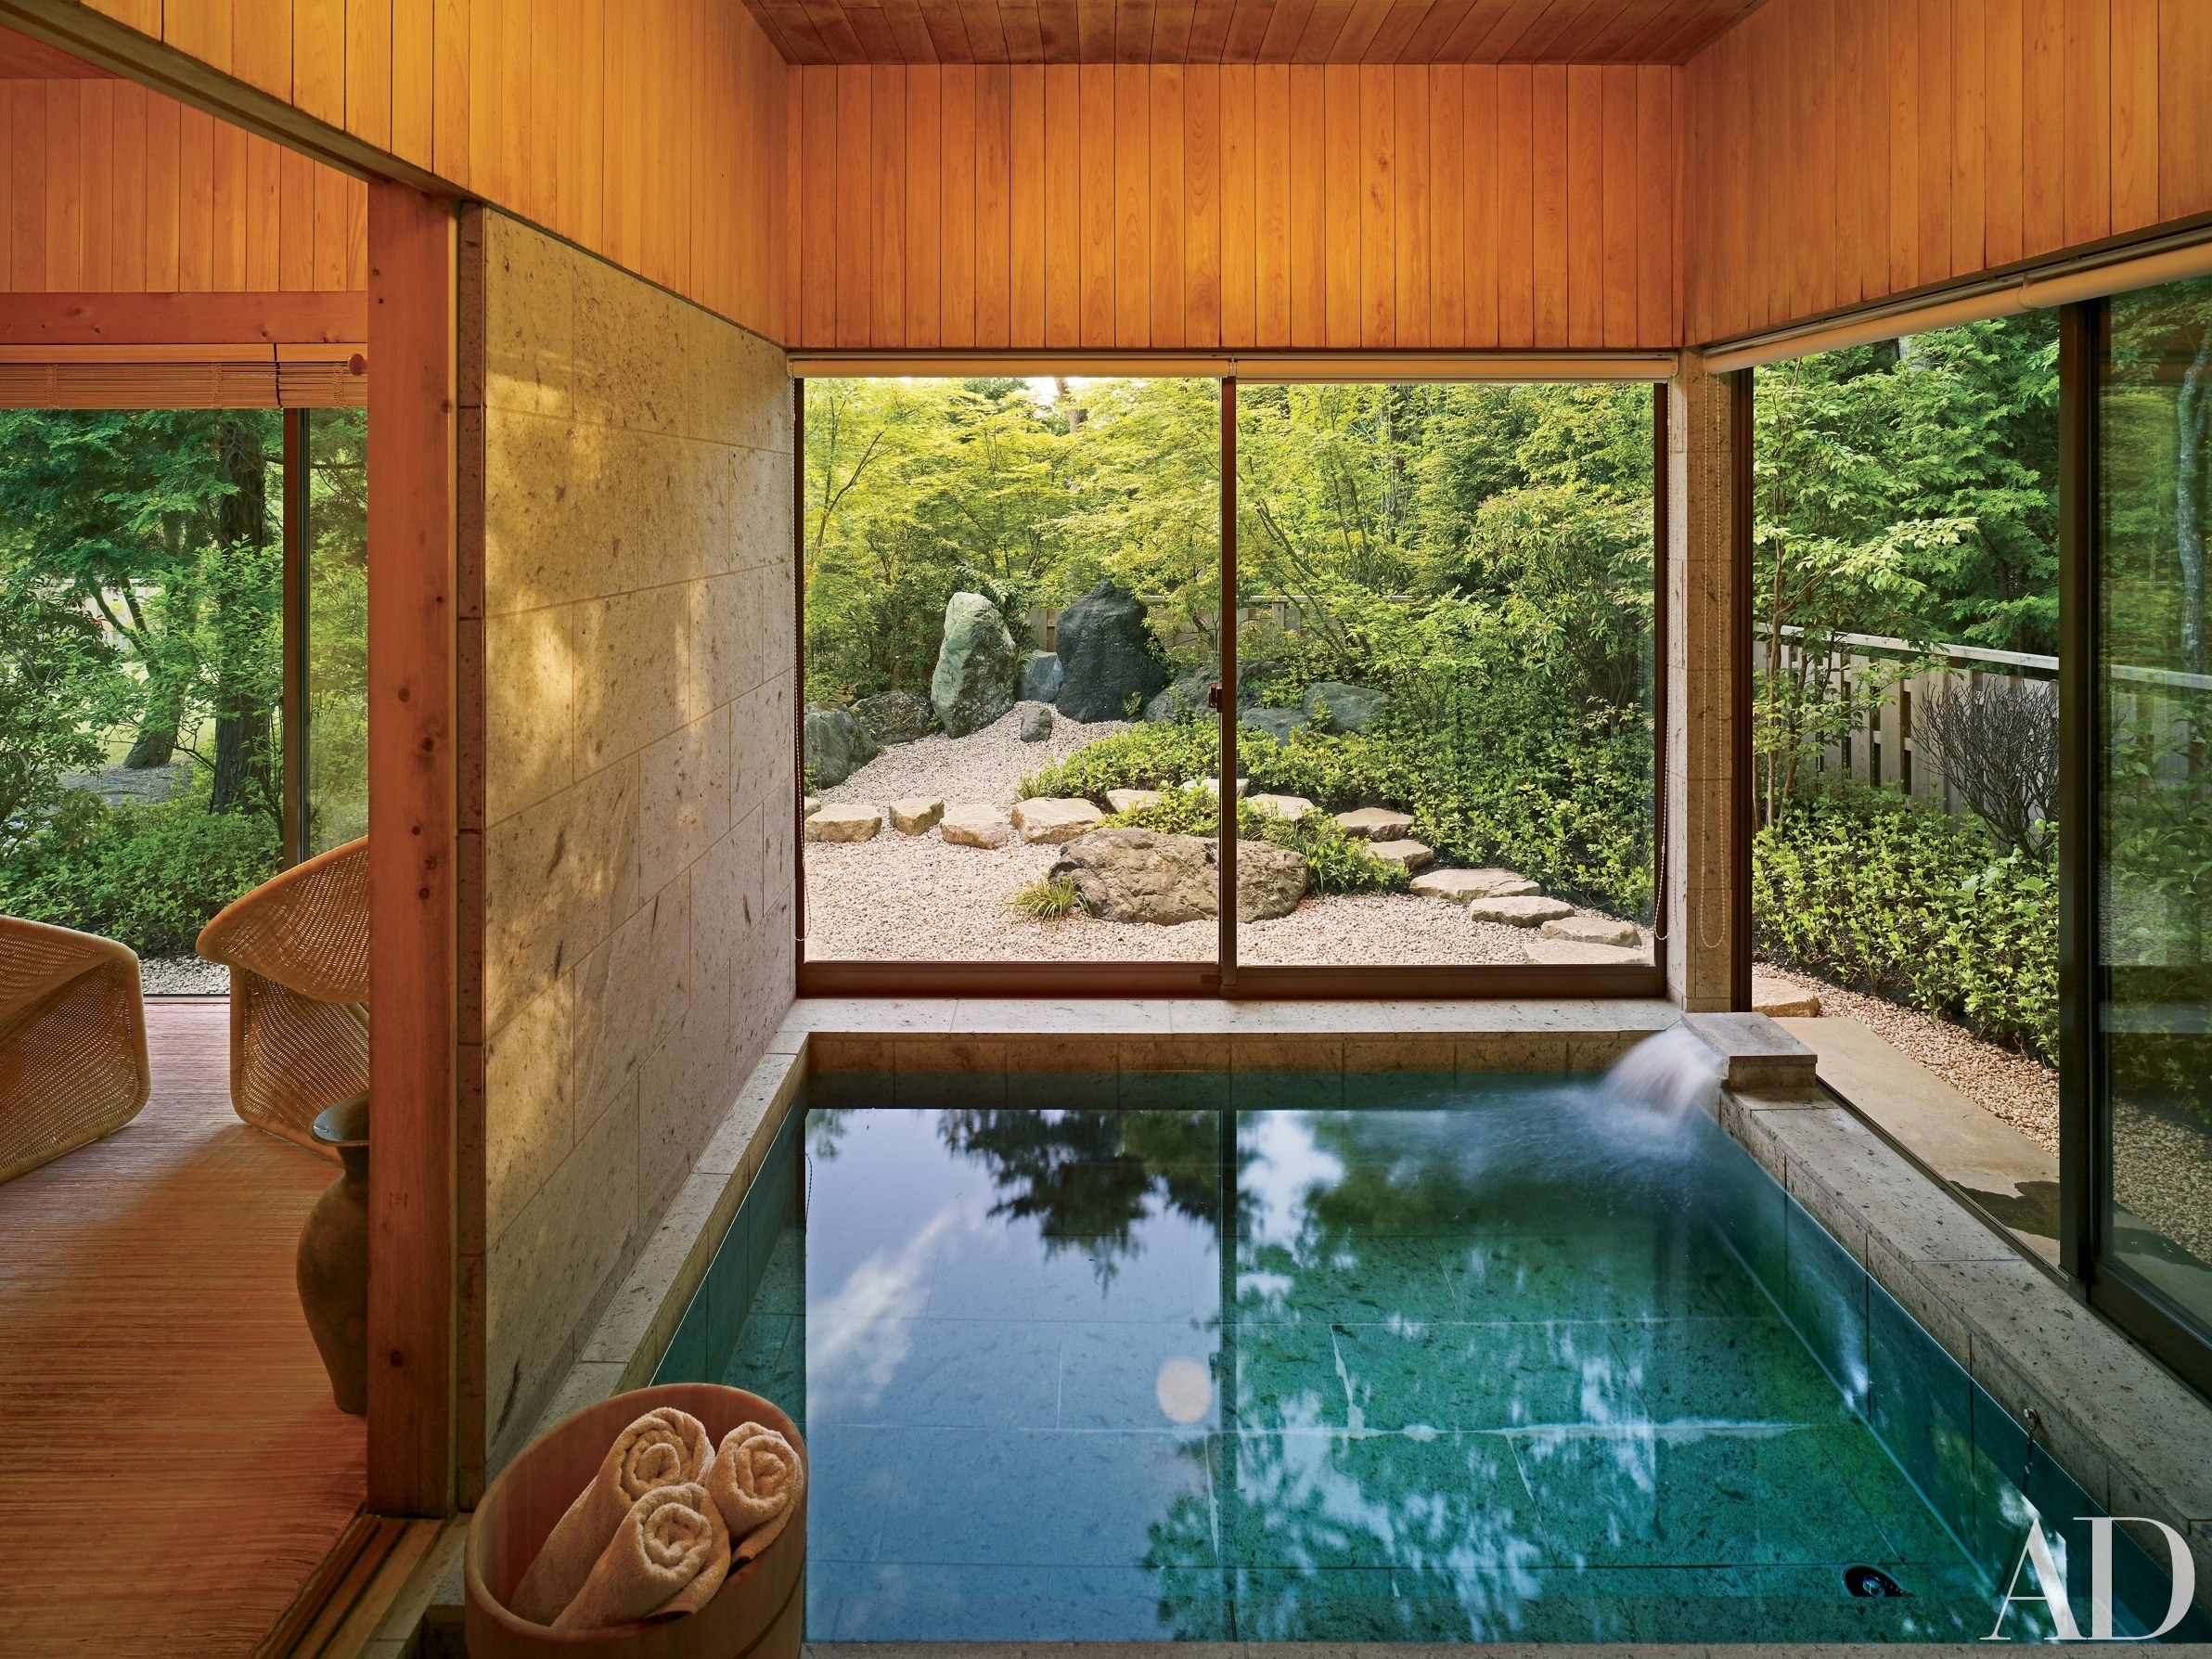 Go Inside These Beautiful Japanese Houses - Architectural Digest intended for Japanese House Design With Garden Room Inside